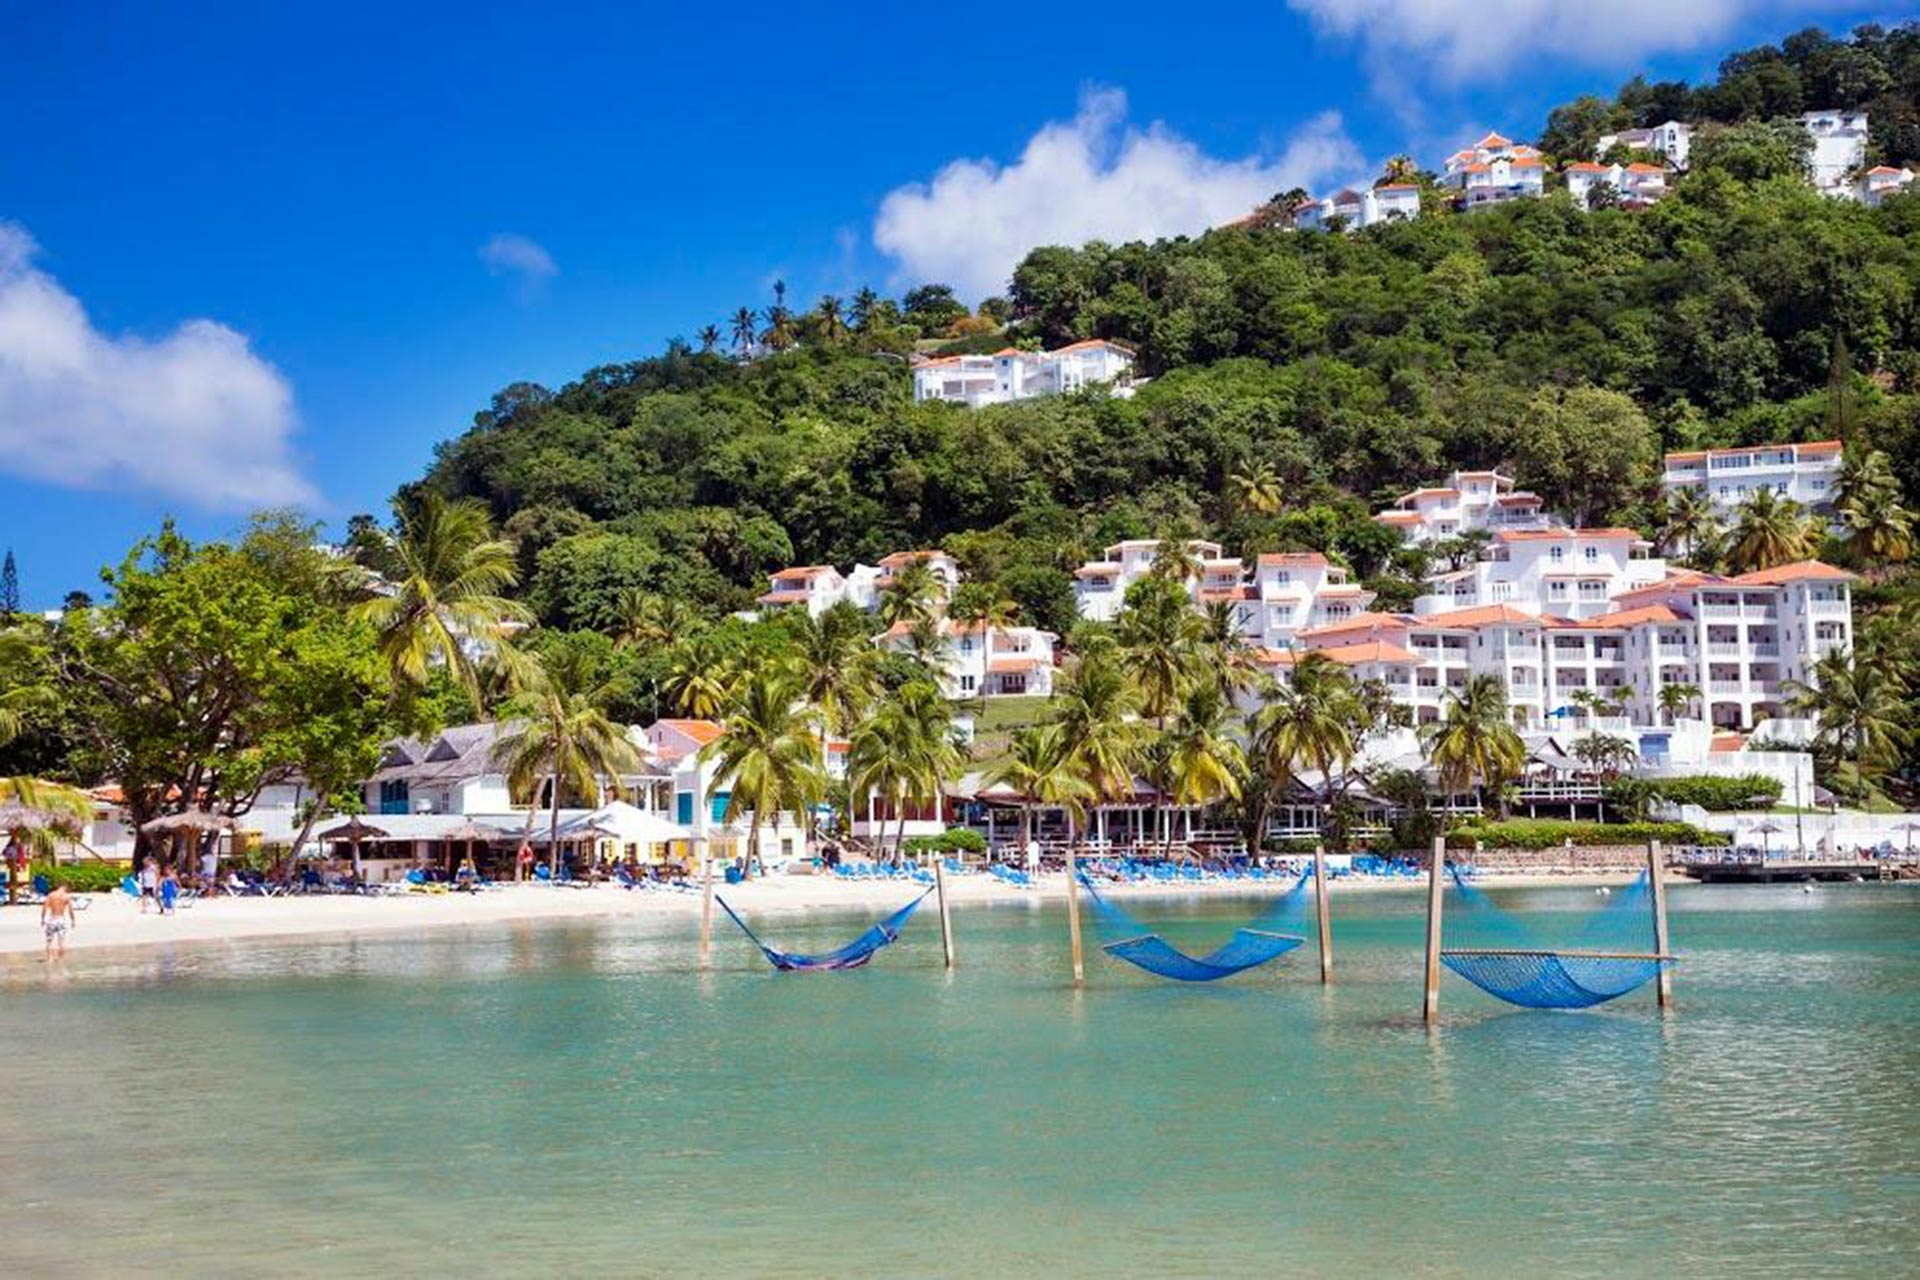 Windjammer Landing Villa Beach Resort, St. Lucia